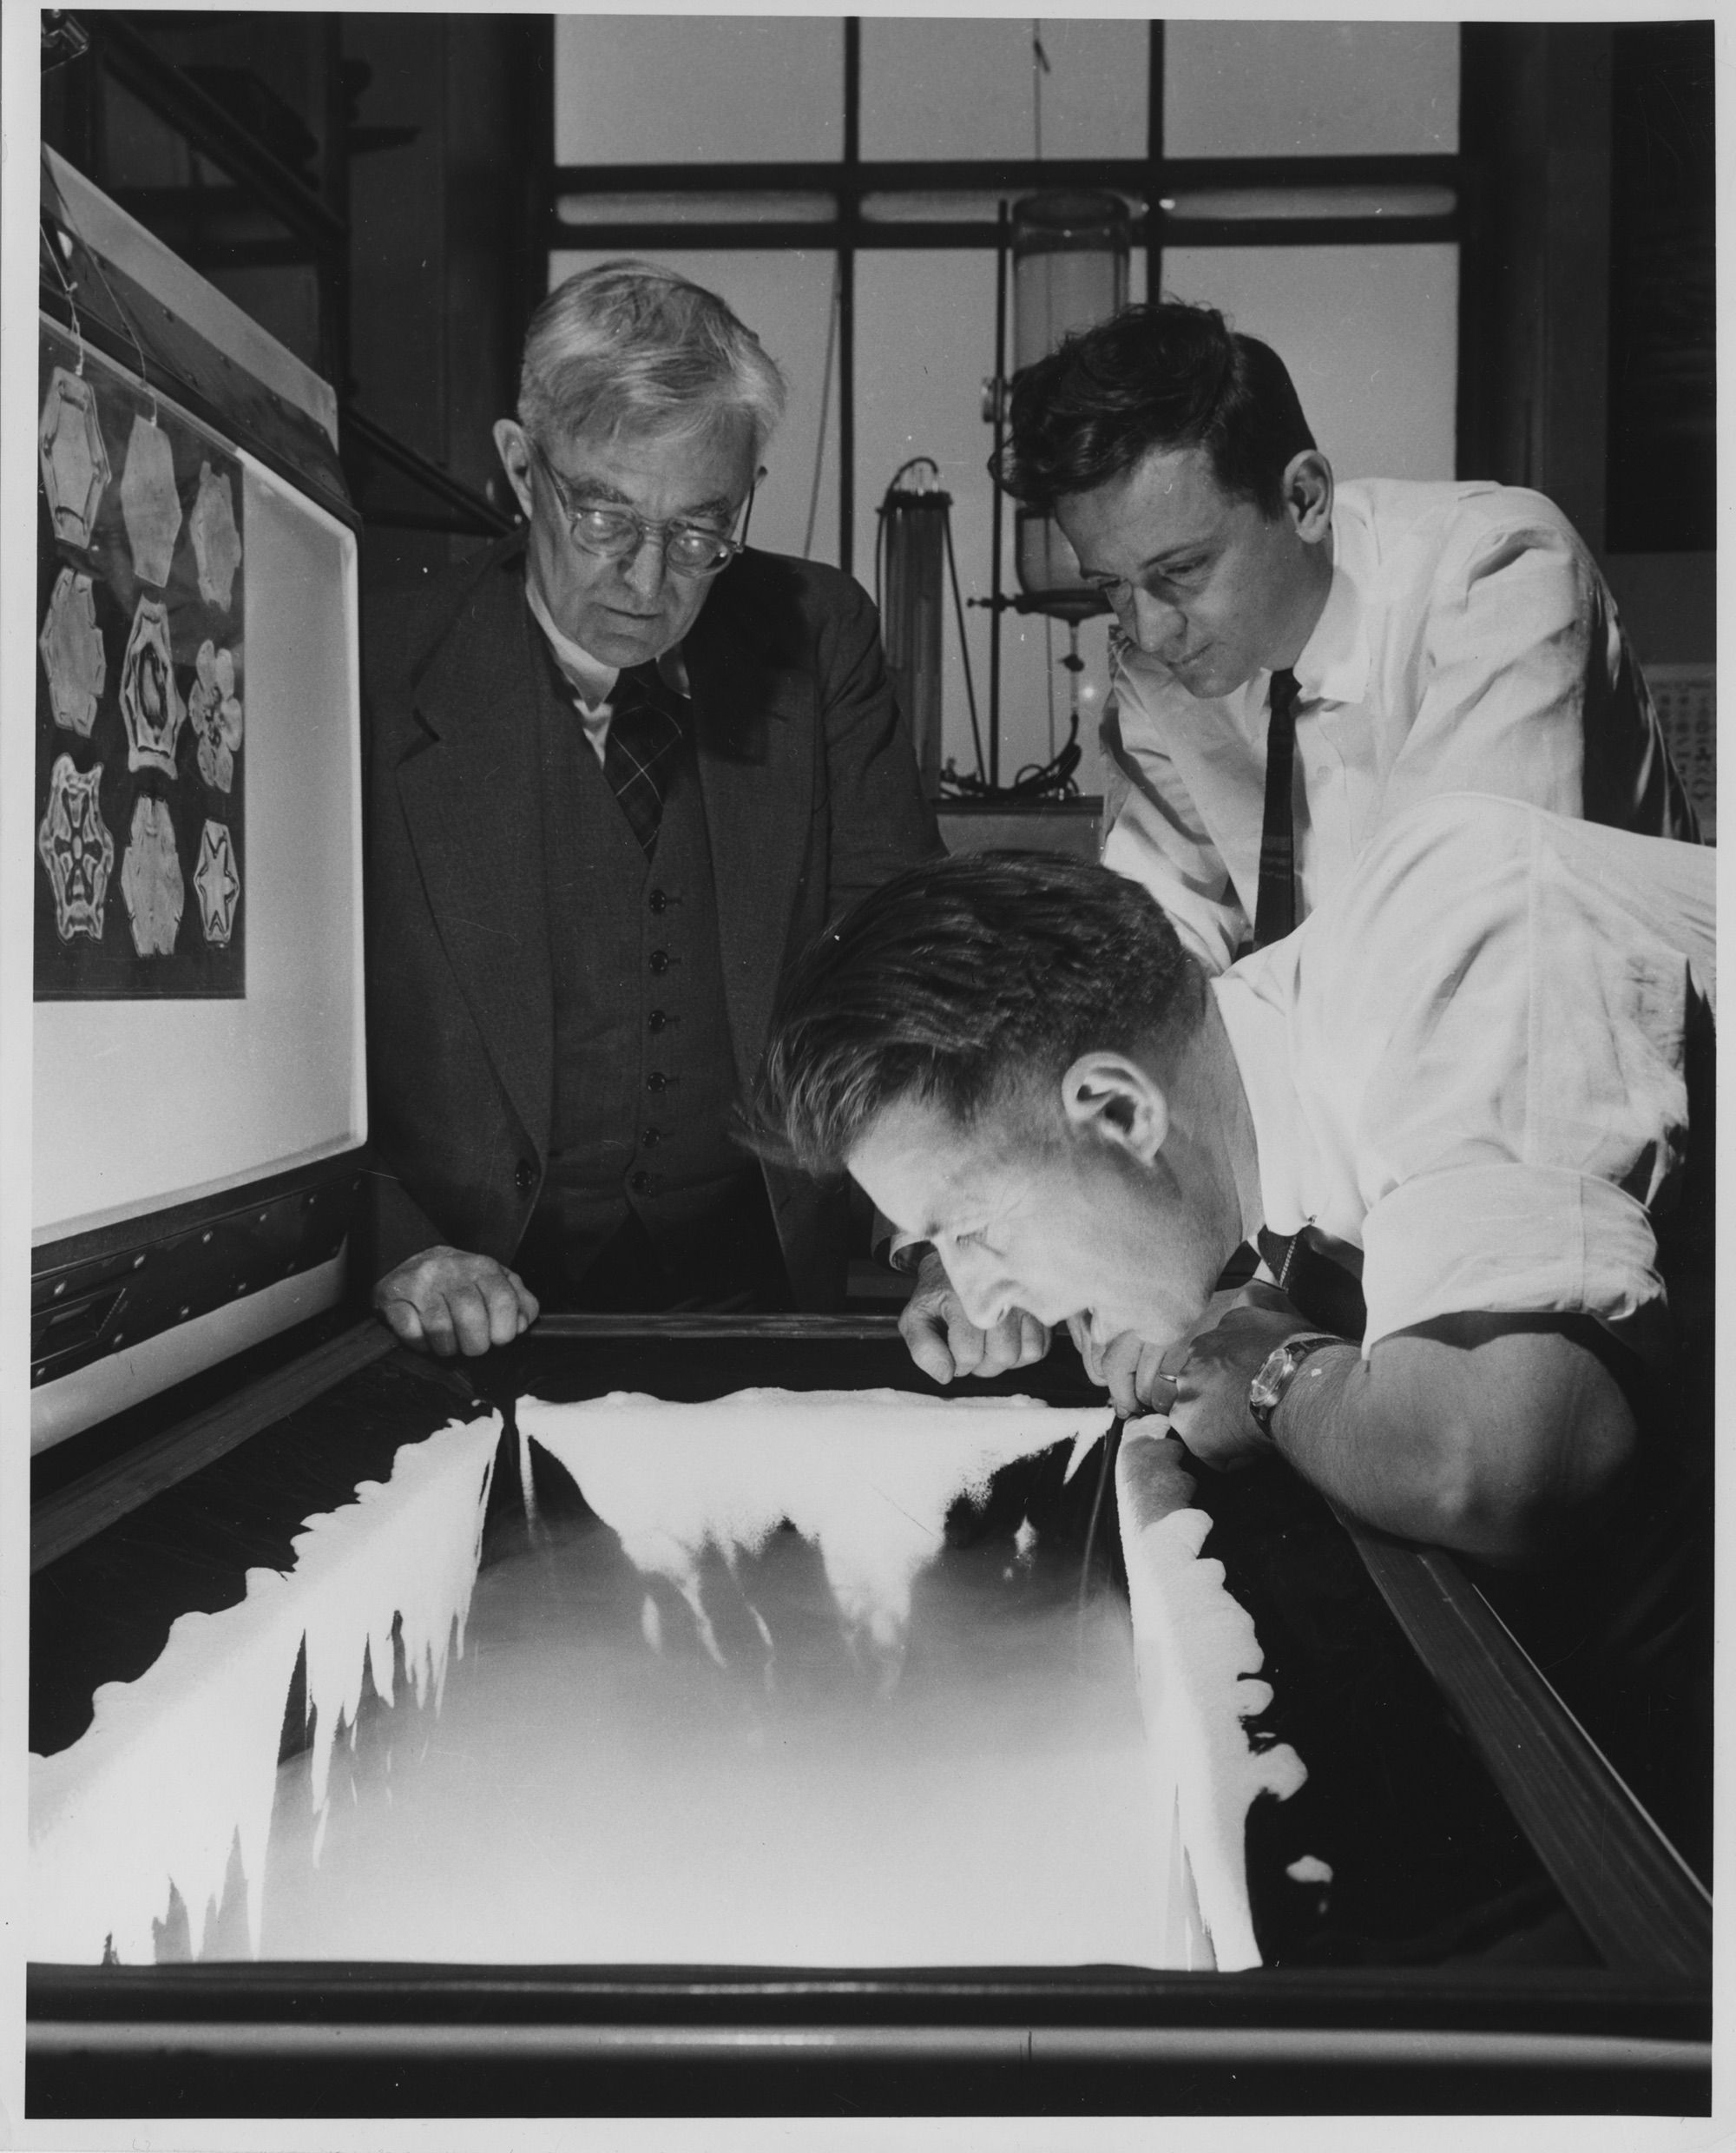 GE scientist Vincent Schaefer breathes a cloud into a freezer as colleagues Irving Langmuir and Bernard Vonnegut look on.